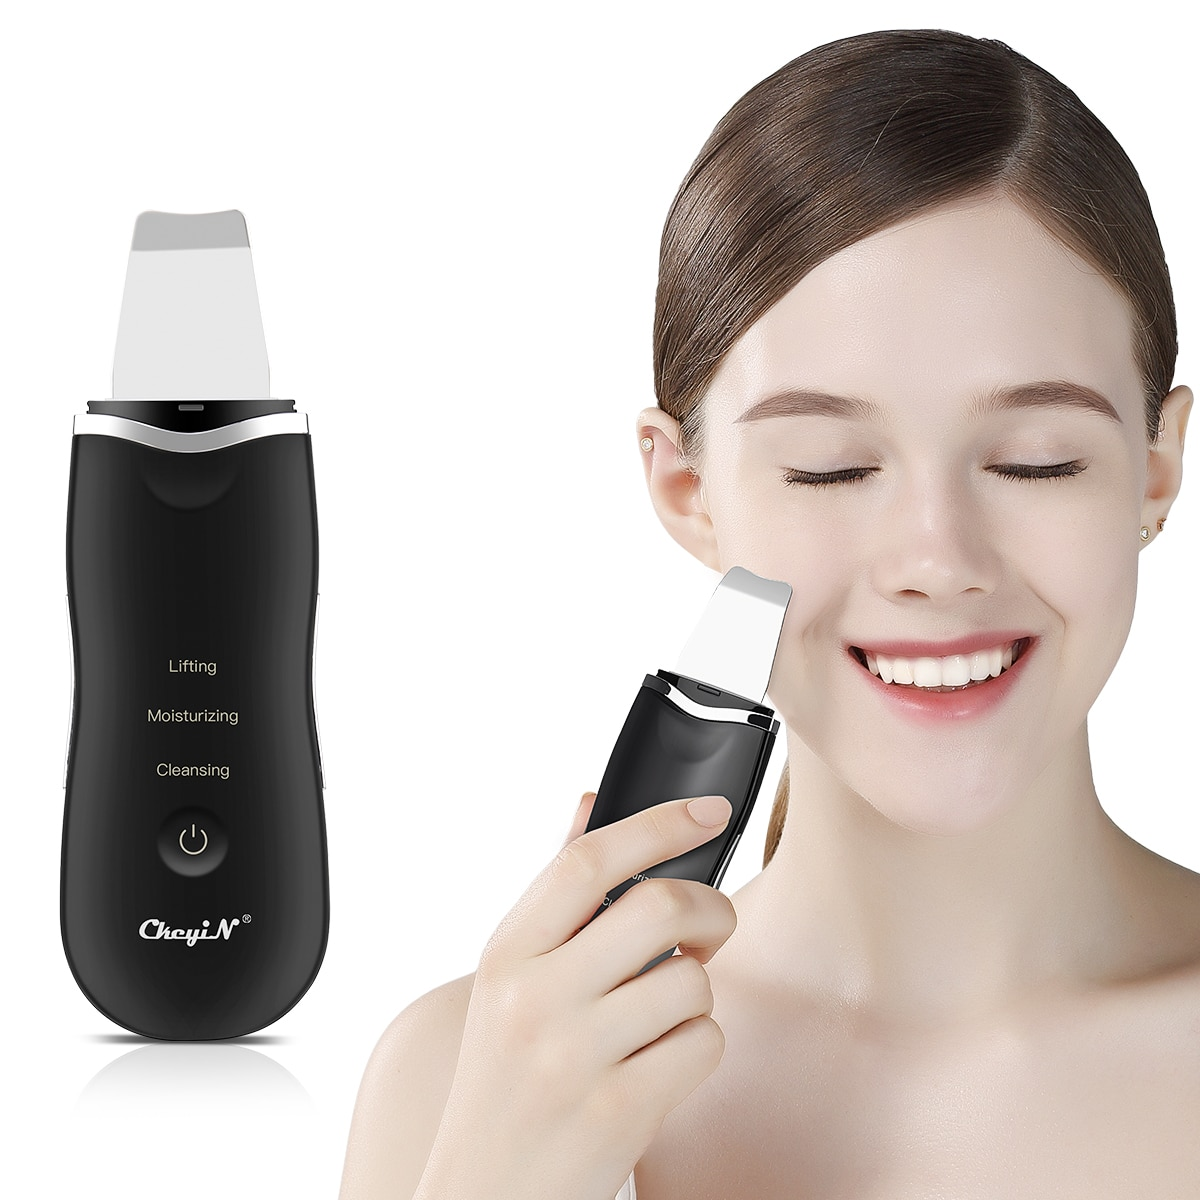 Ultrasonic Skin Scrubber Facial Spatula Deap Cleaning Skin Peeling Face Cleaner + RF EMS LED Beauty Device + Mini Nano mister 48